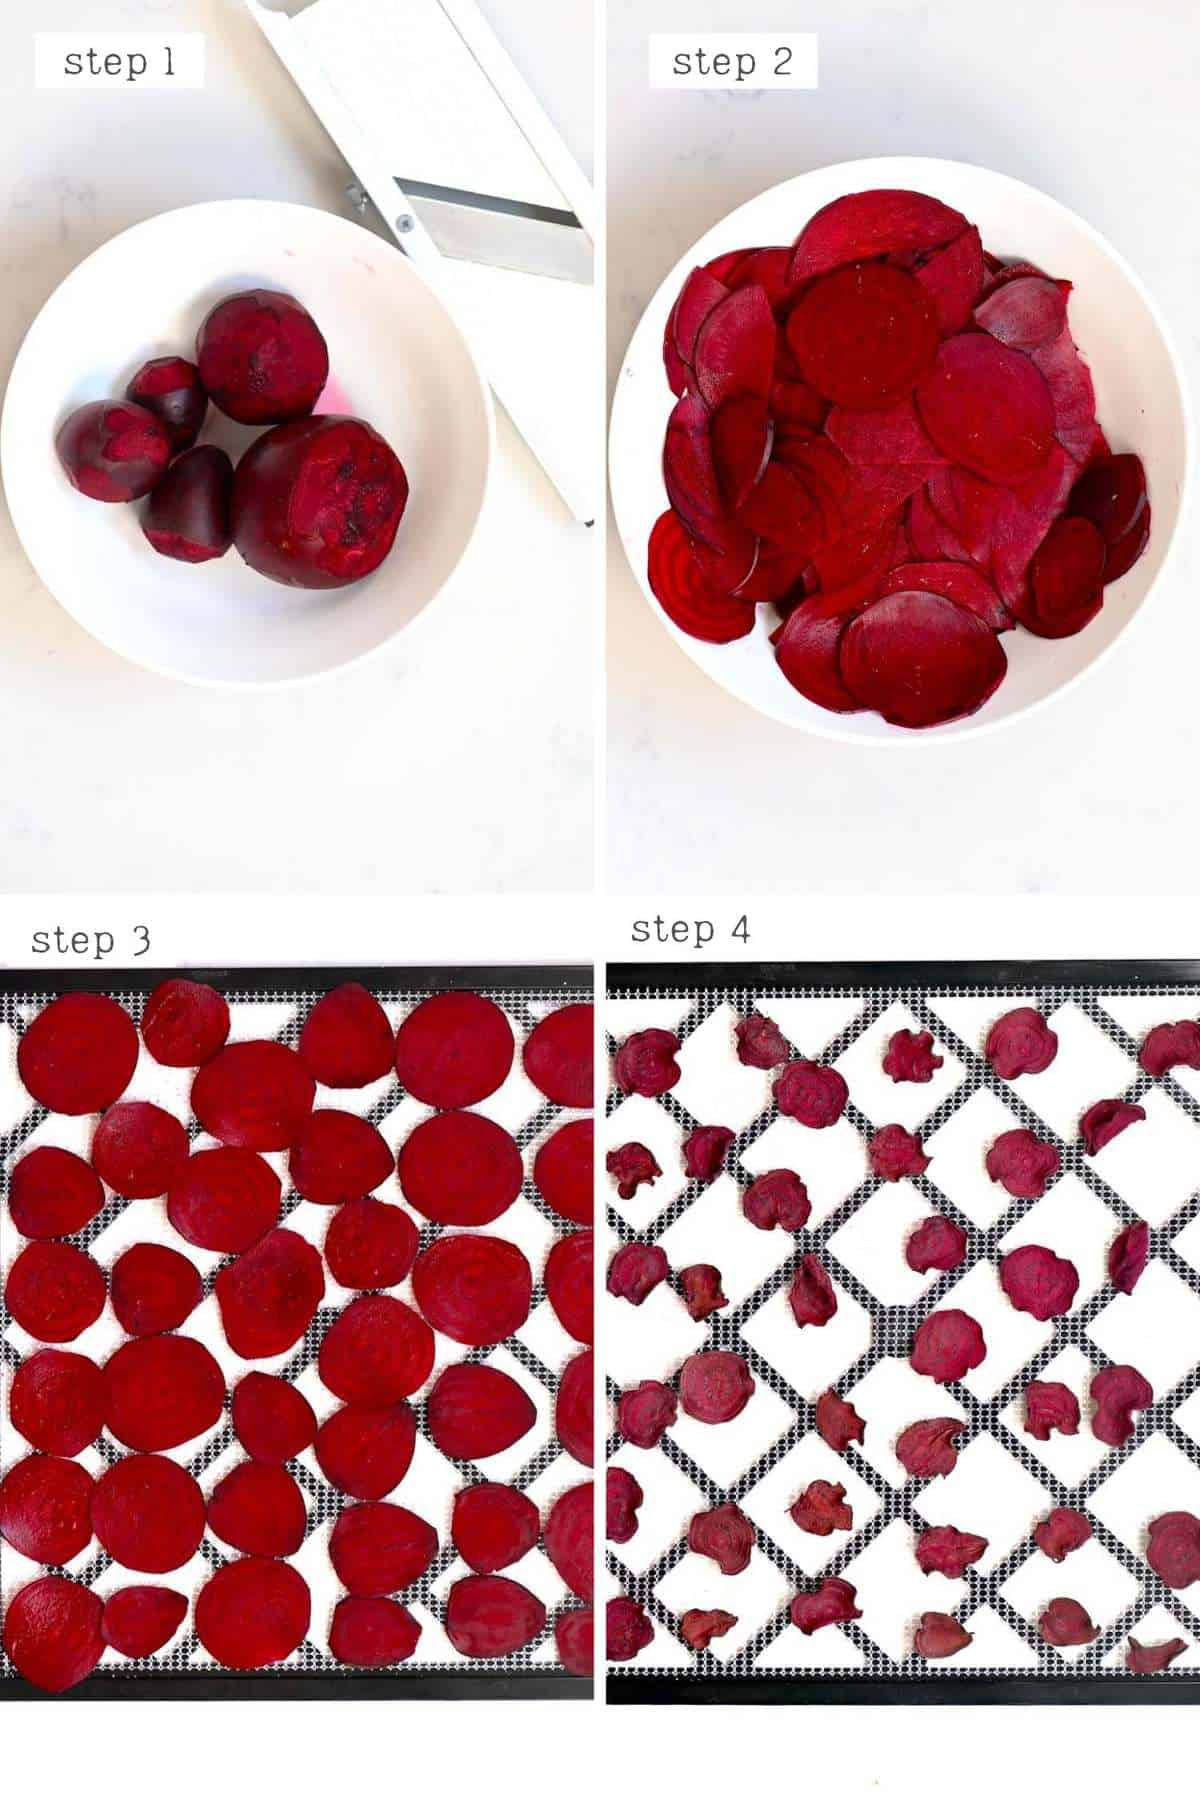 steps for making beetroot chips